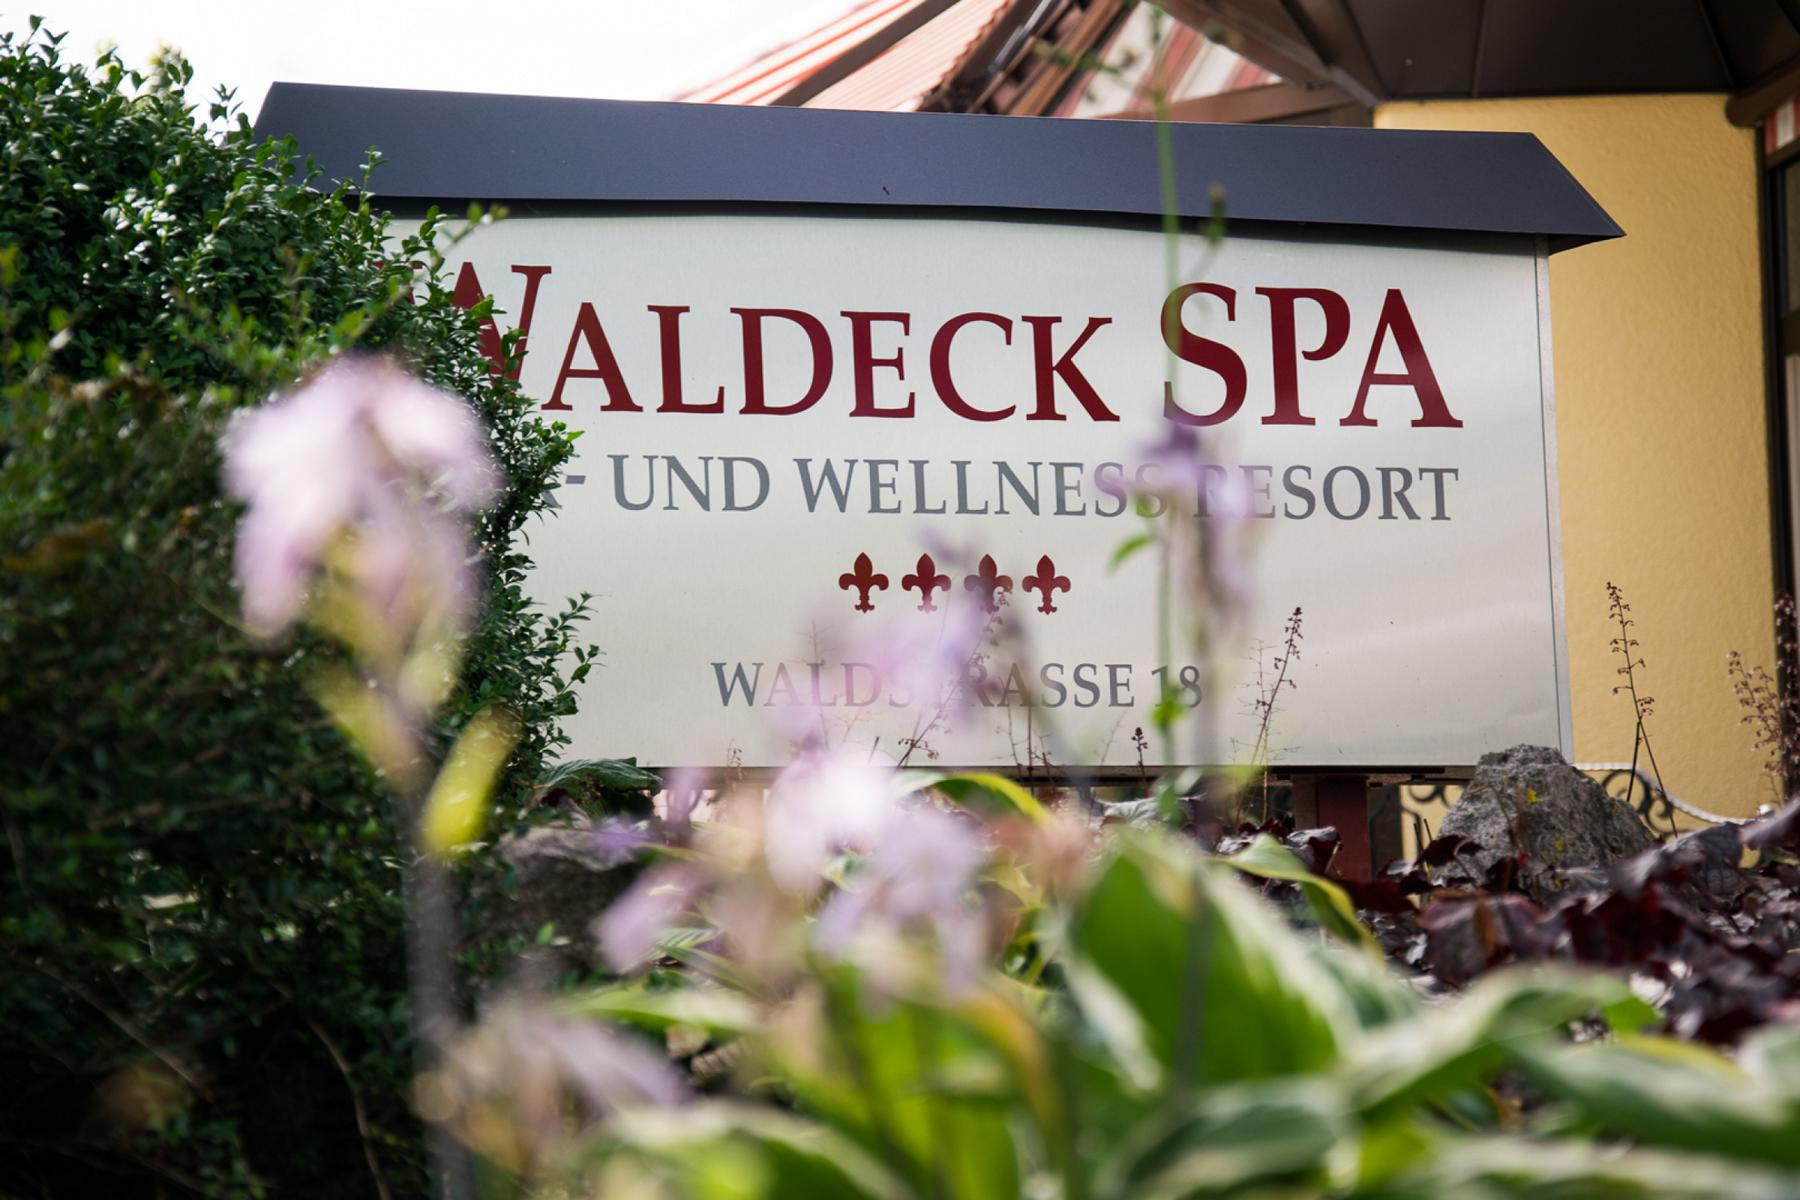 Waldeck SPA Kur Wellness Resort weihnachten